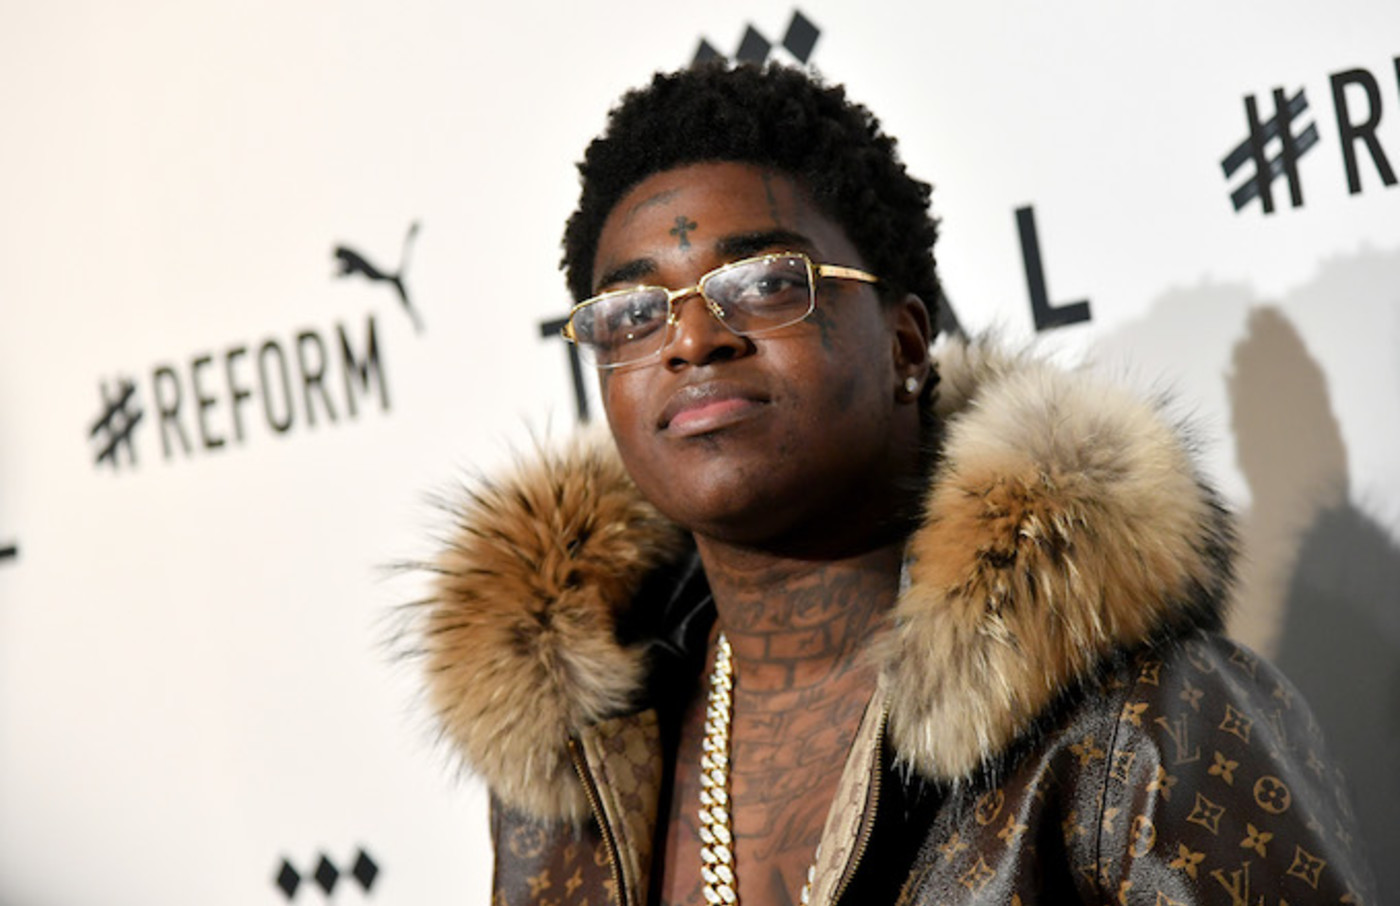 Kodak Black attends the 4th Annual TIDAL X: Brooklyn.